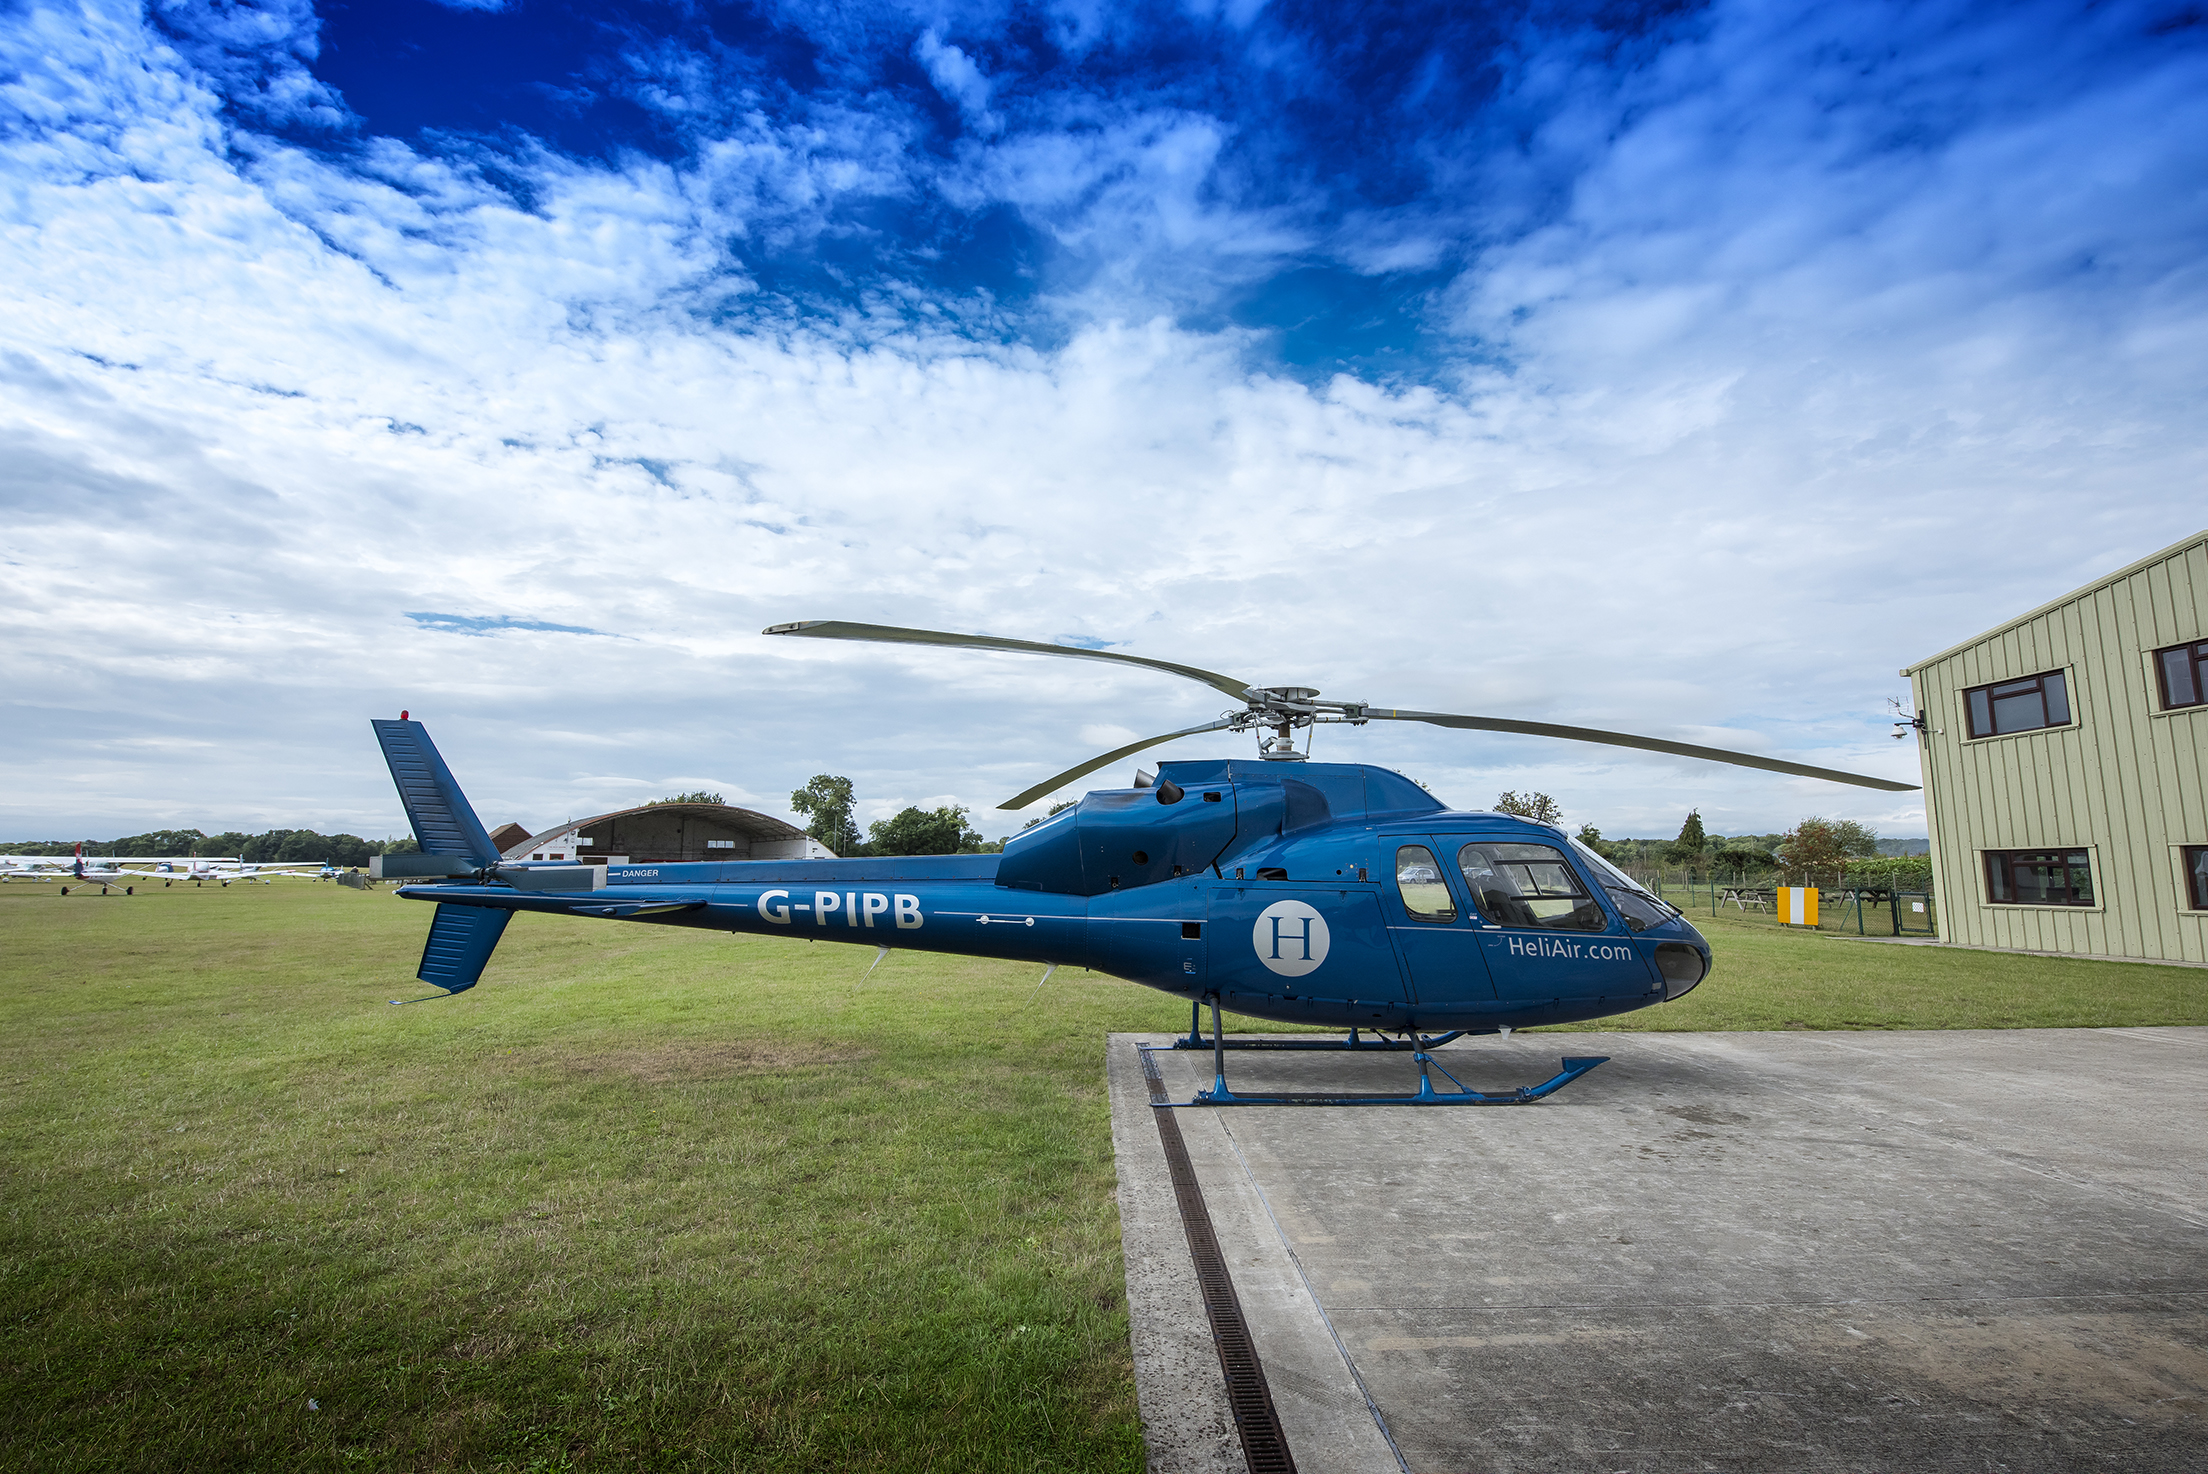 r44 helicopter for sale uk with Used Eurocopter As355 Twin Squirrel Spifr For Sale on Used Robinson R66 Turbine 2014 For Sale also Search together with Helicopter Games For Girls together with Used Robinson R44 Raven Ii 2014 Overhaul likewise 617467.